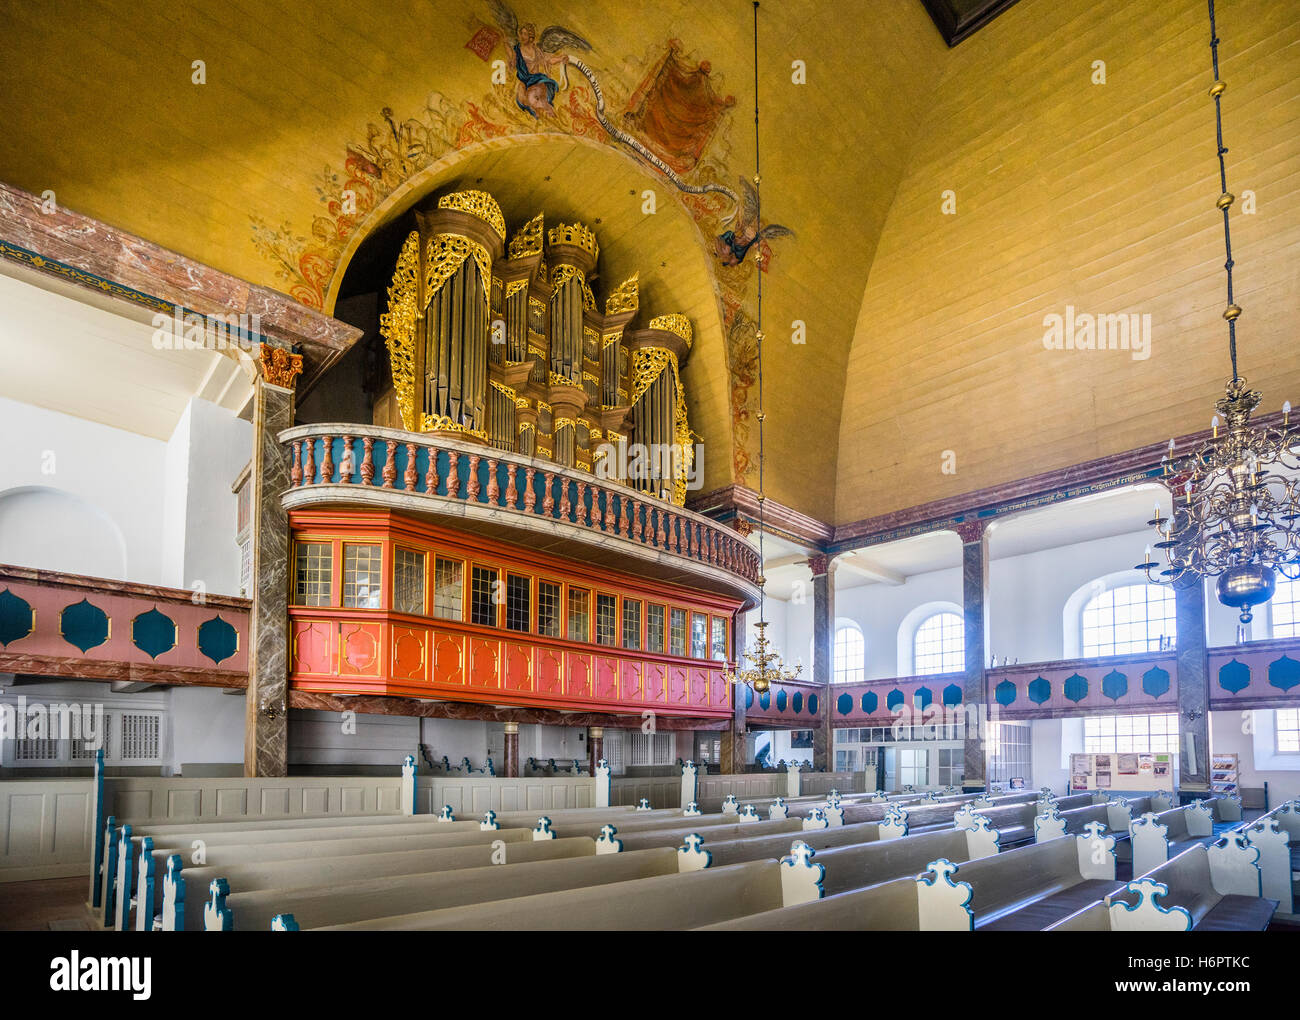 Germany, Schleswig-Holstein, Dithmarschen, Wesselburen, organ and loge in the church of St. Bartholomäus - Stock Image